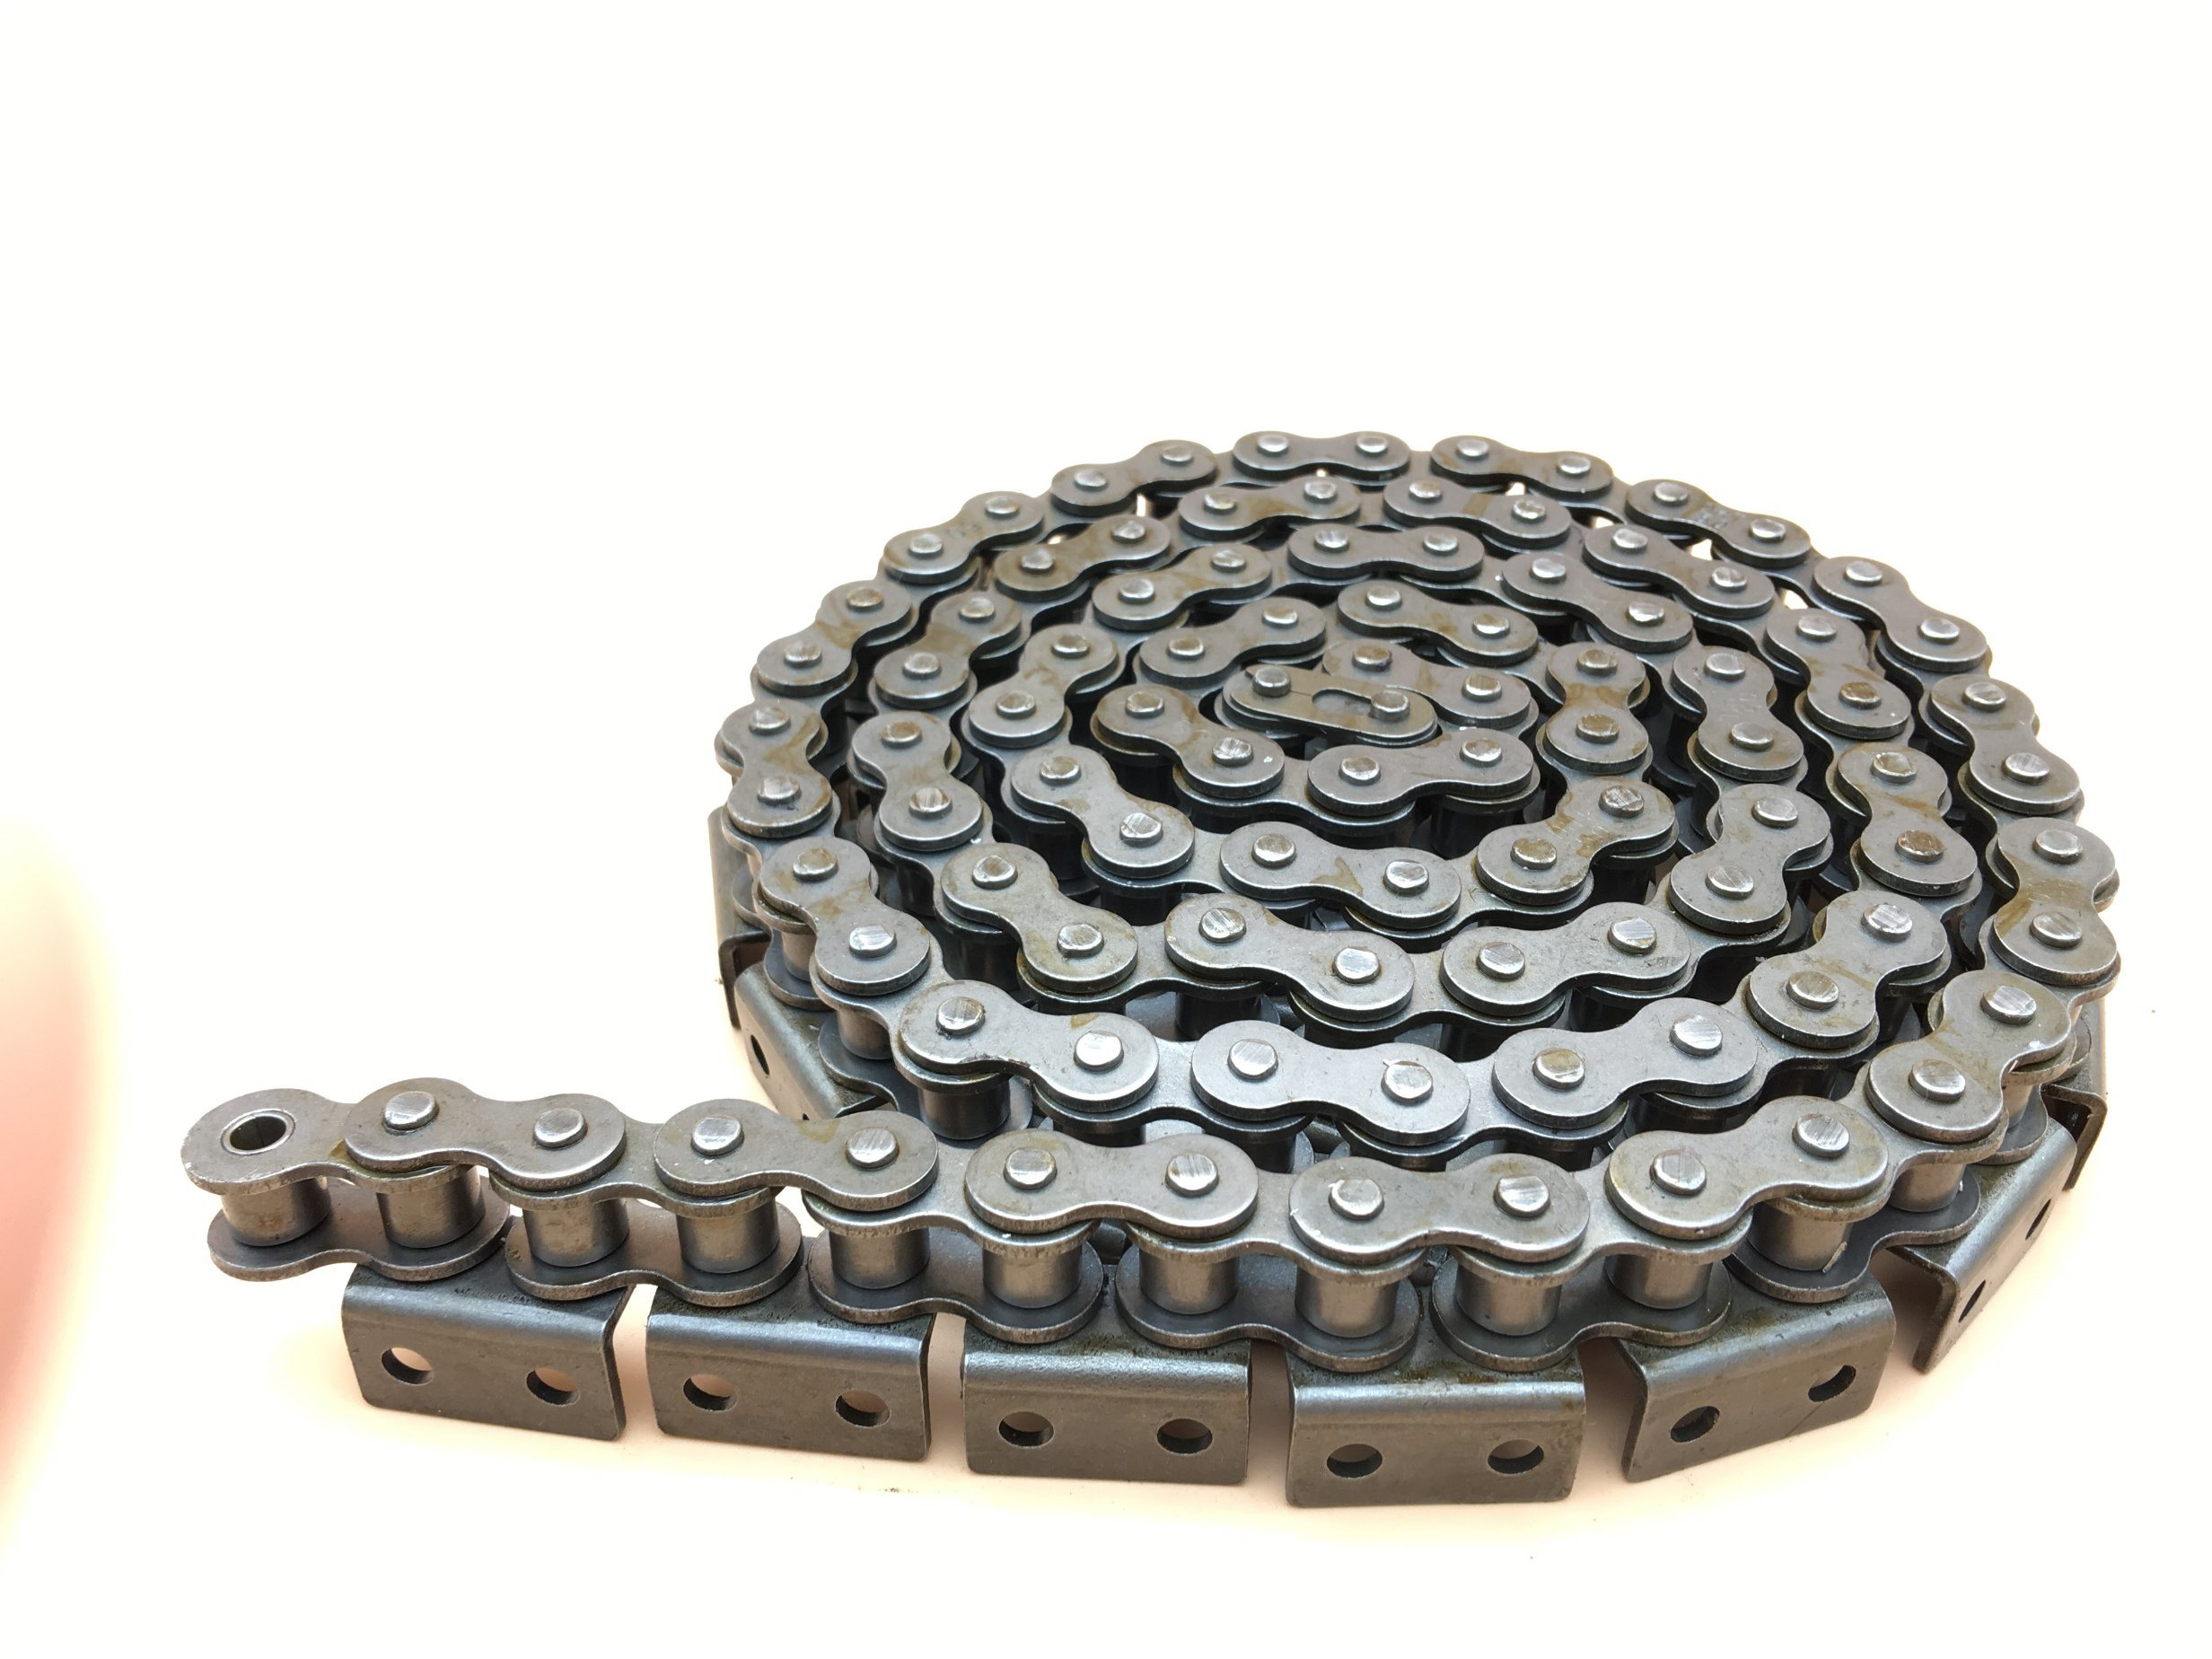 Carbon Steel Conveyor Chain with Attachment Wa-2 RS40